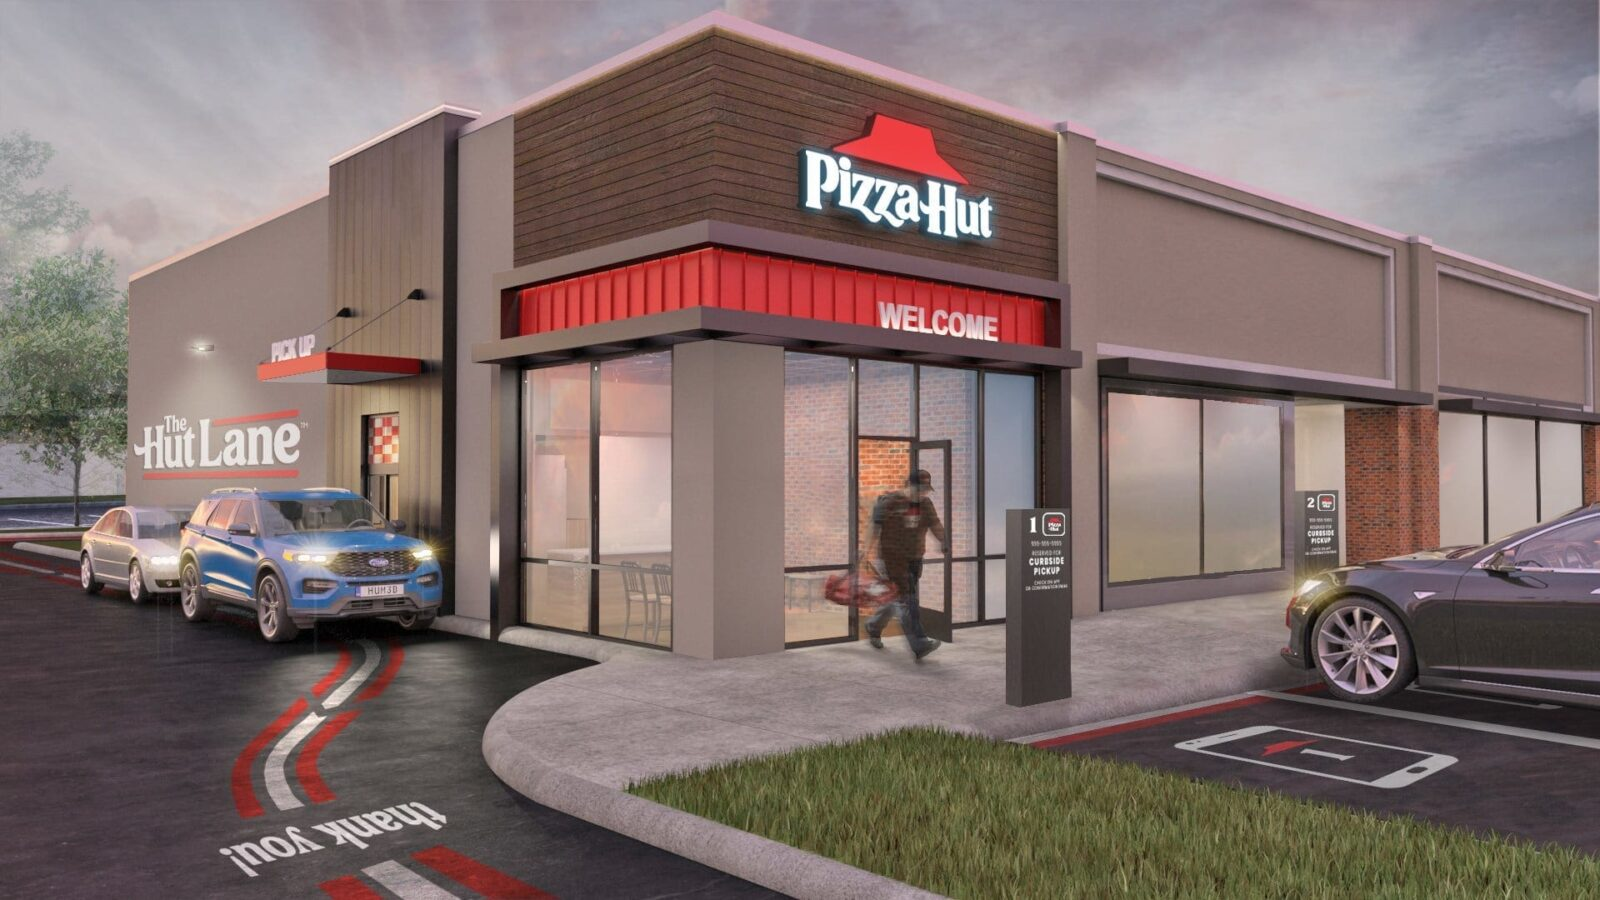 Pizza Hut Launches The Hut Lane – A Digital-First Carryout Option